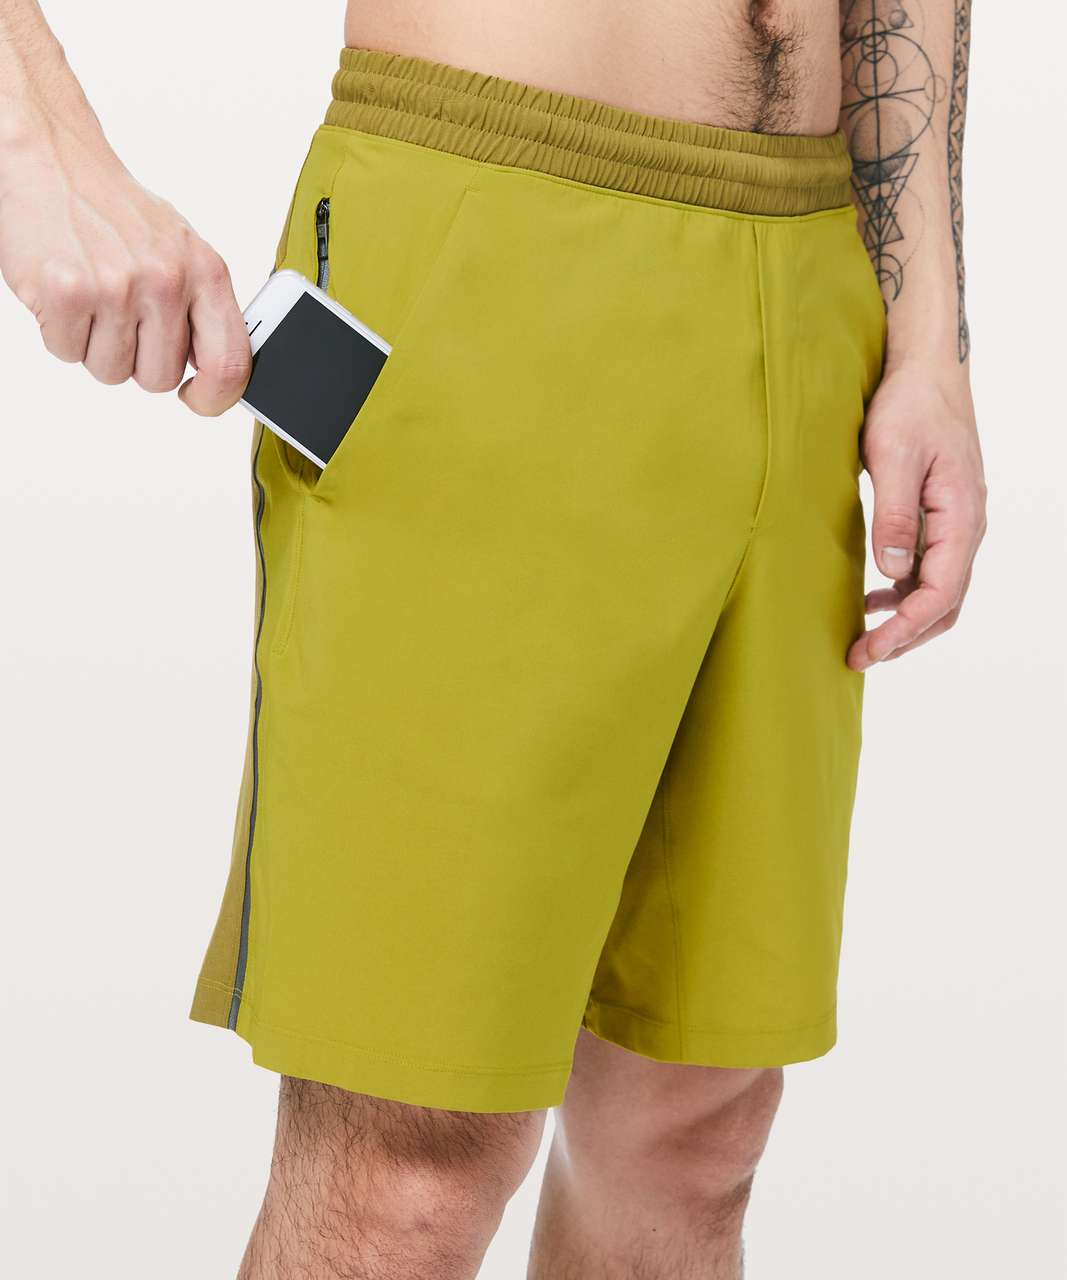 "Lululemon Pace Breaker Short 9"" *Linerless - Golden Lime / Mossy / Grey Sage"